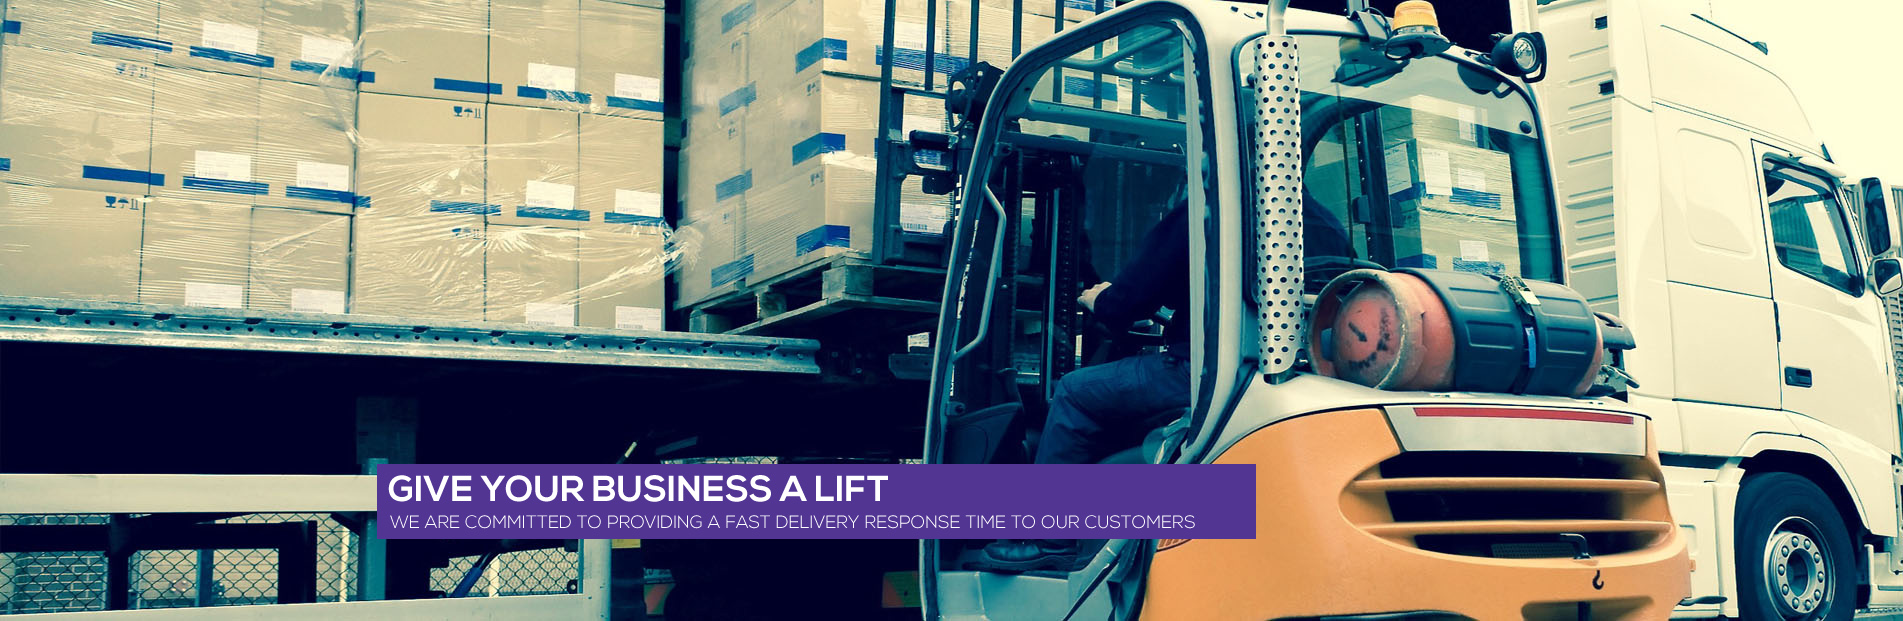 Give your business a lift - Forklift Propane in London